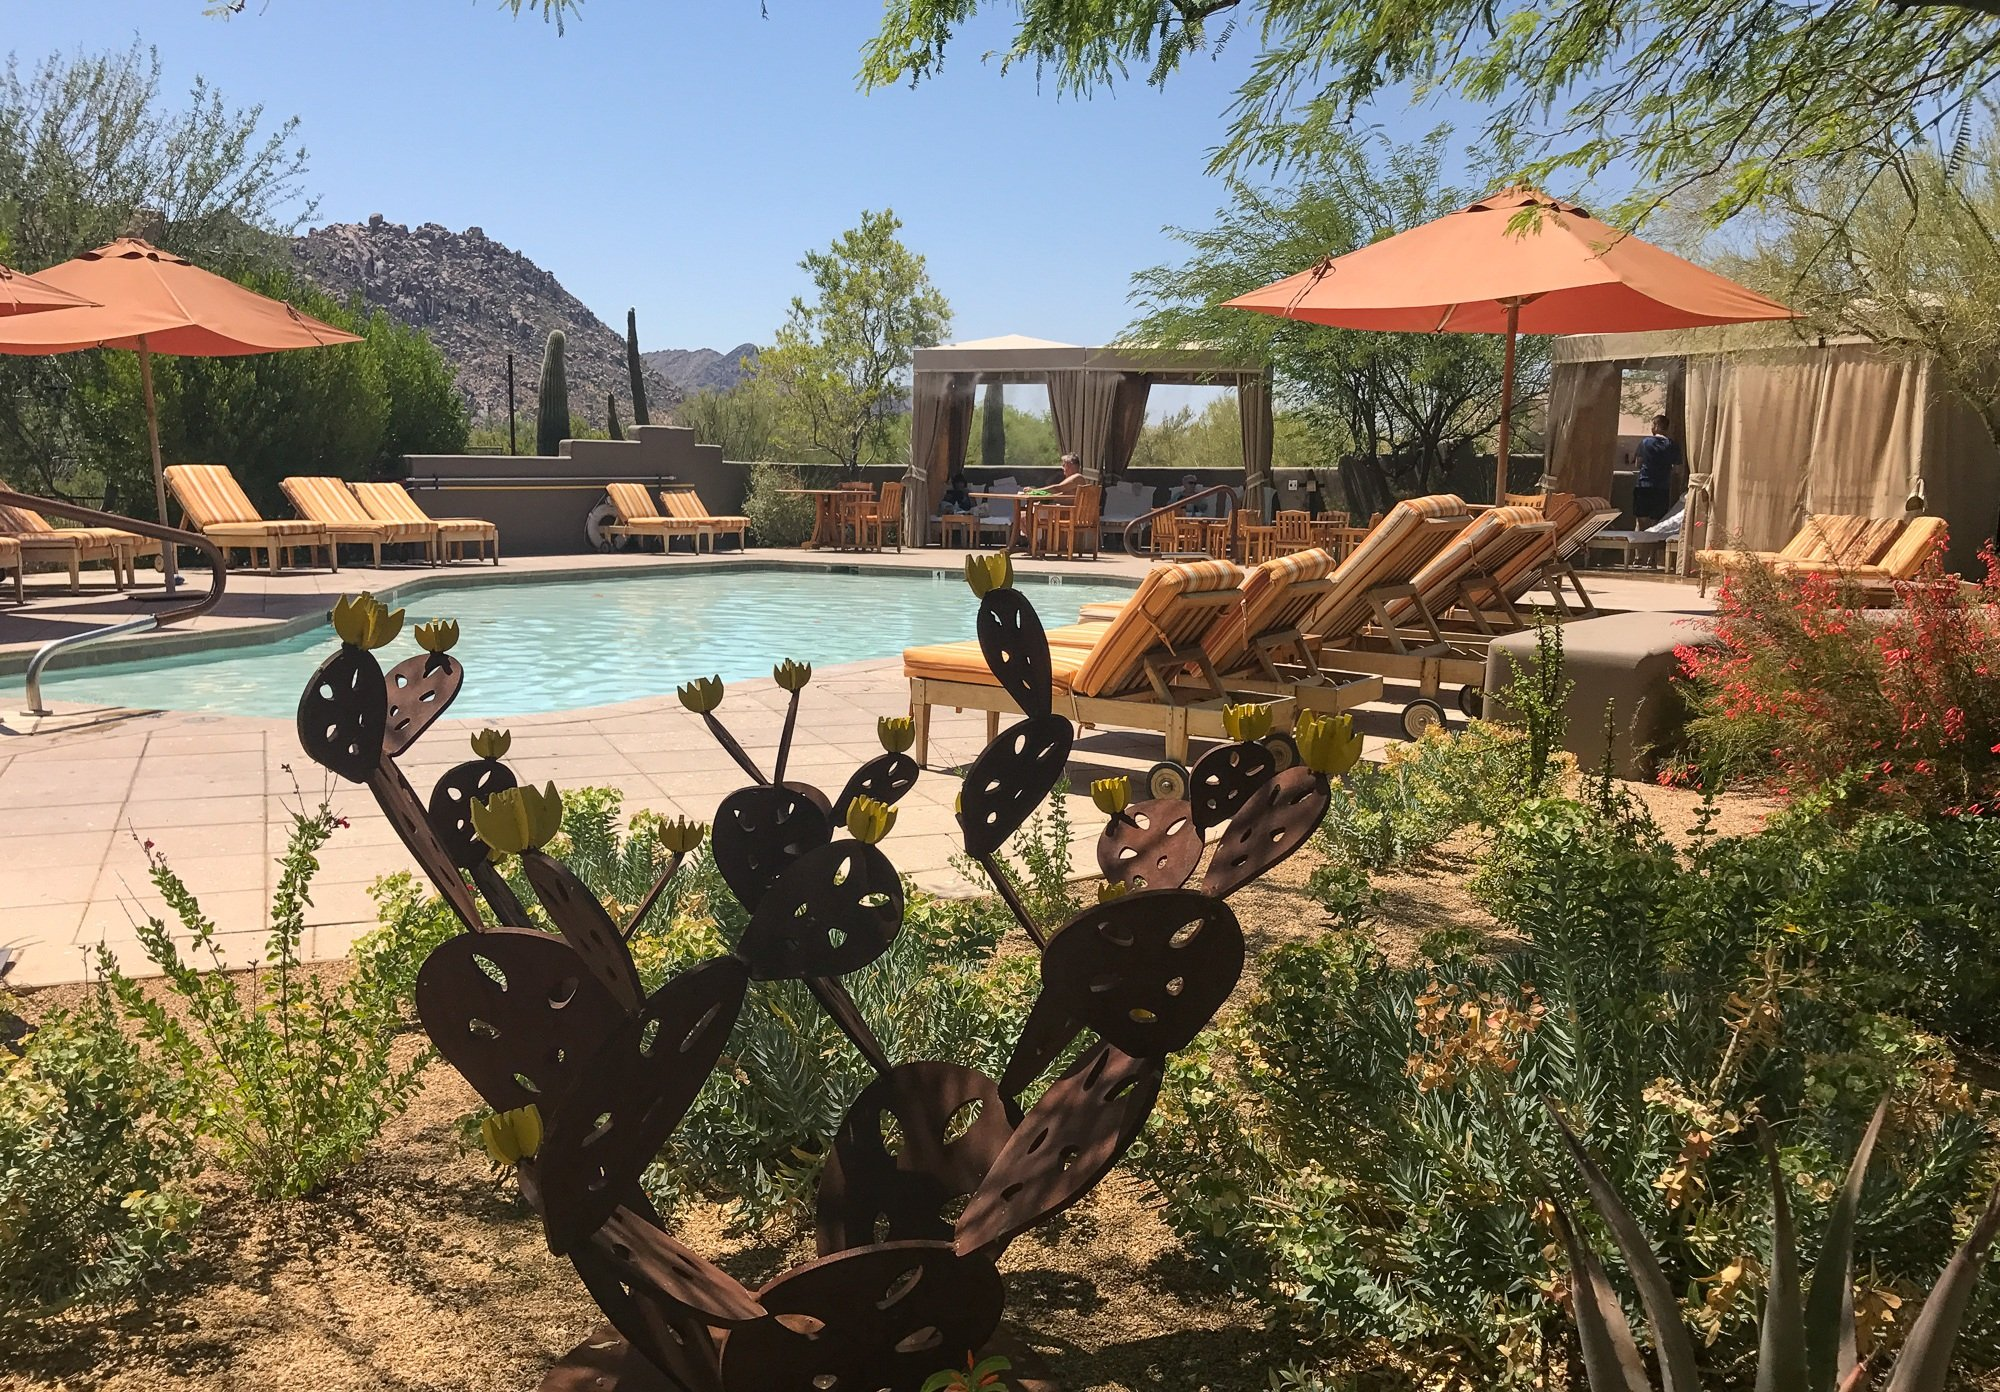 Shallow Children's Pool at Four Seasons Scottsdale Troon